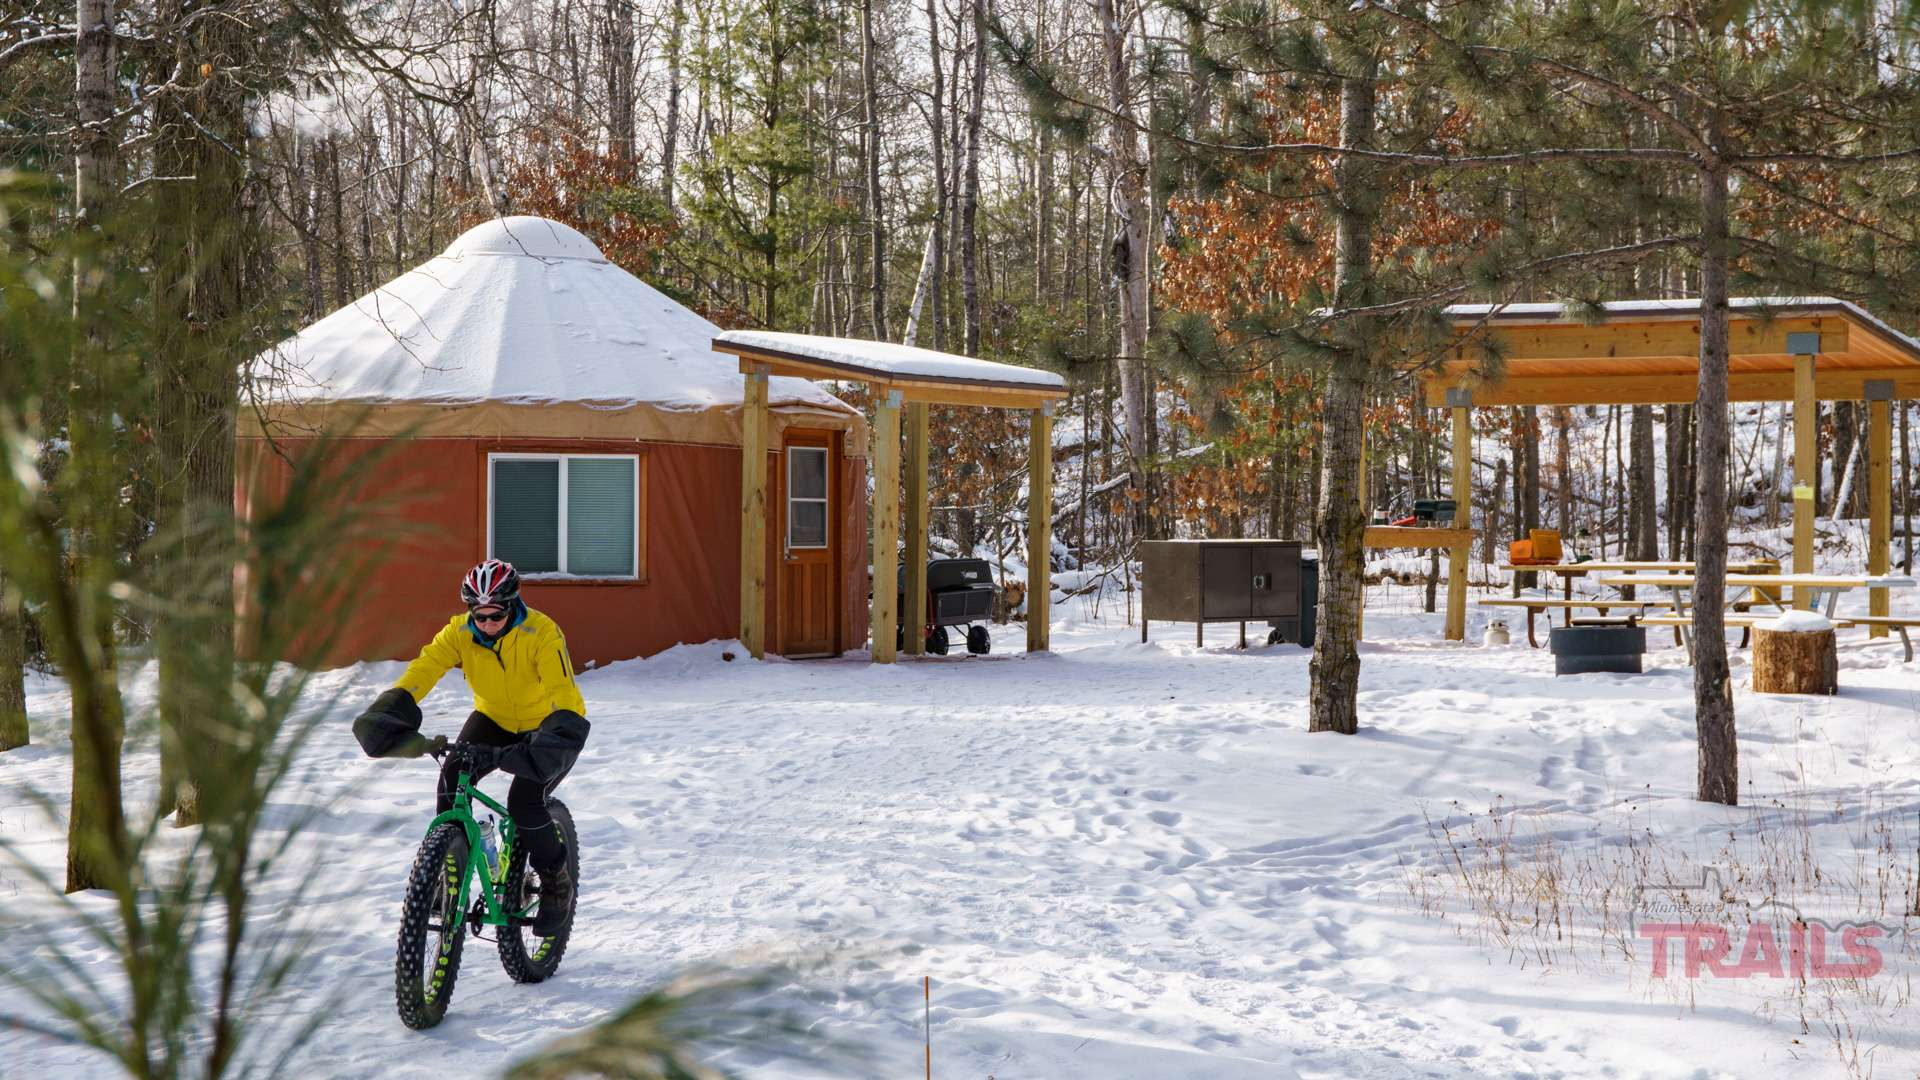 Riding a fat bike in snow at the Cuyuna Country State Recreation Area Yurts